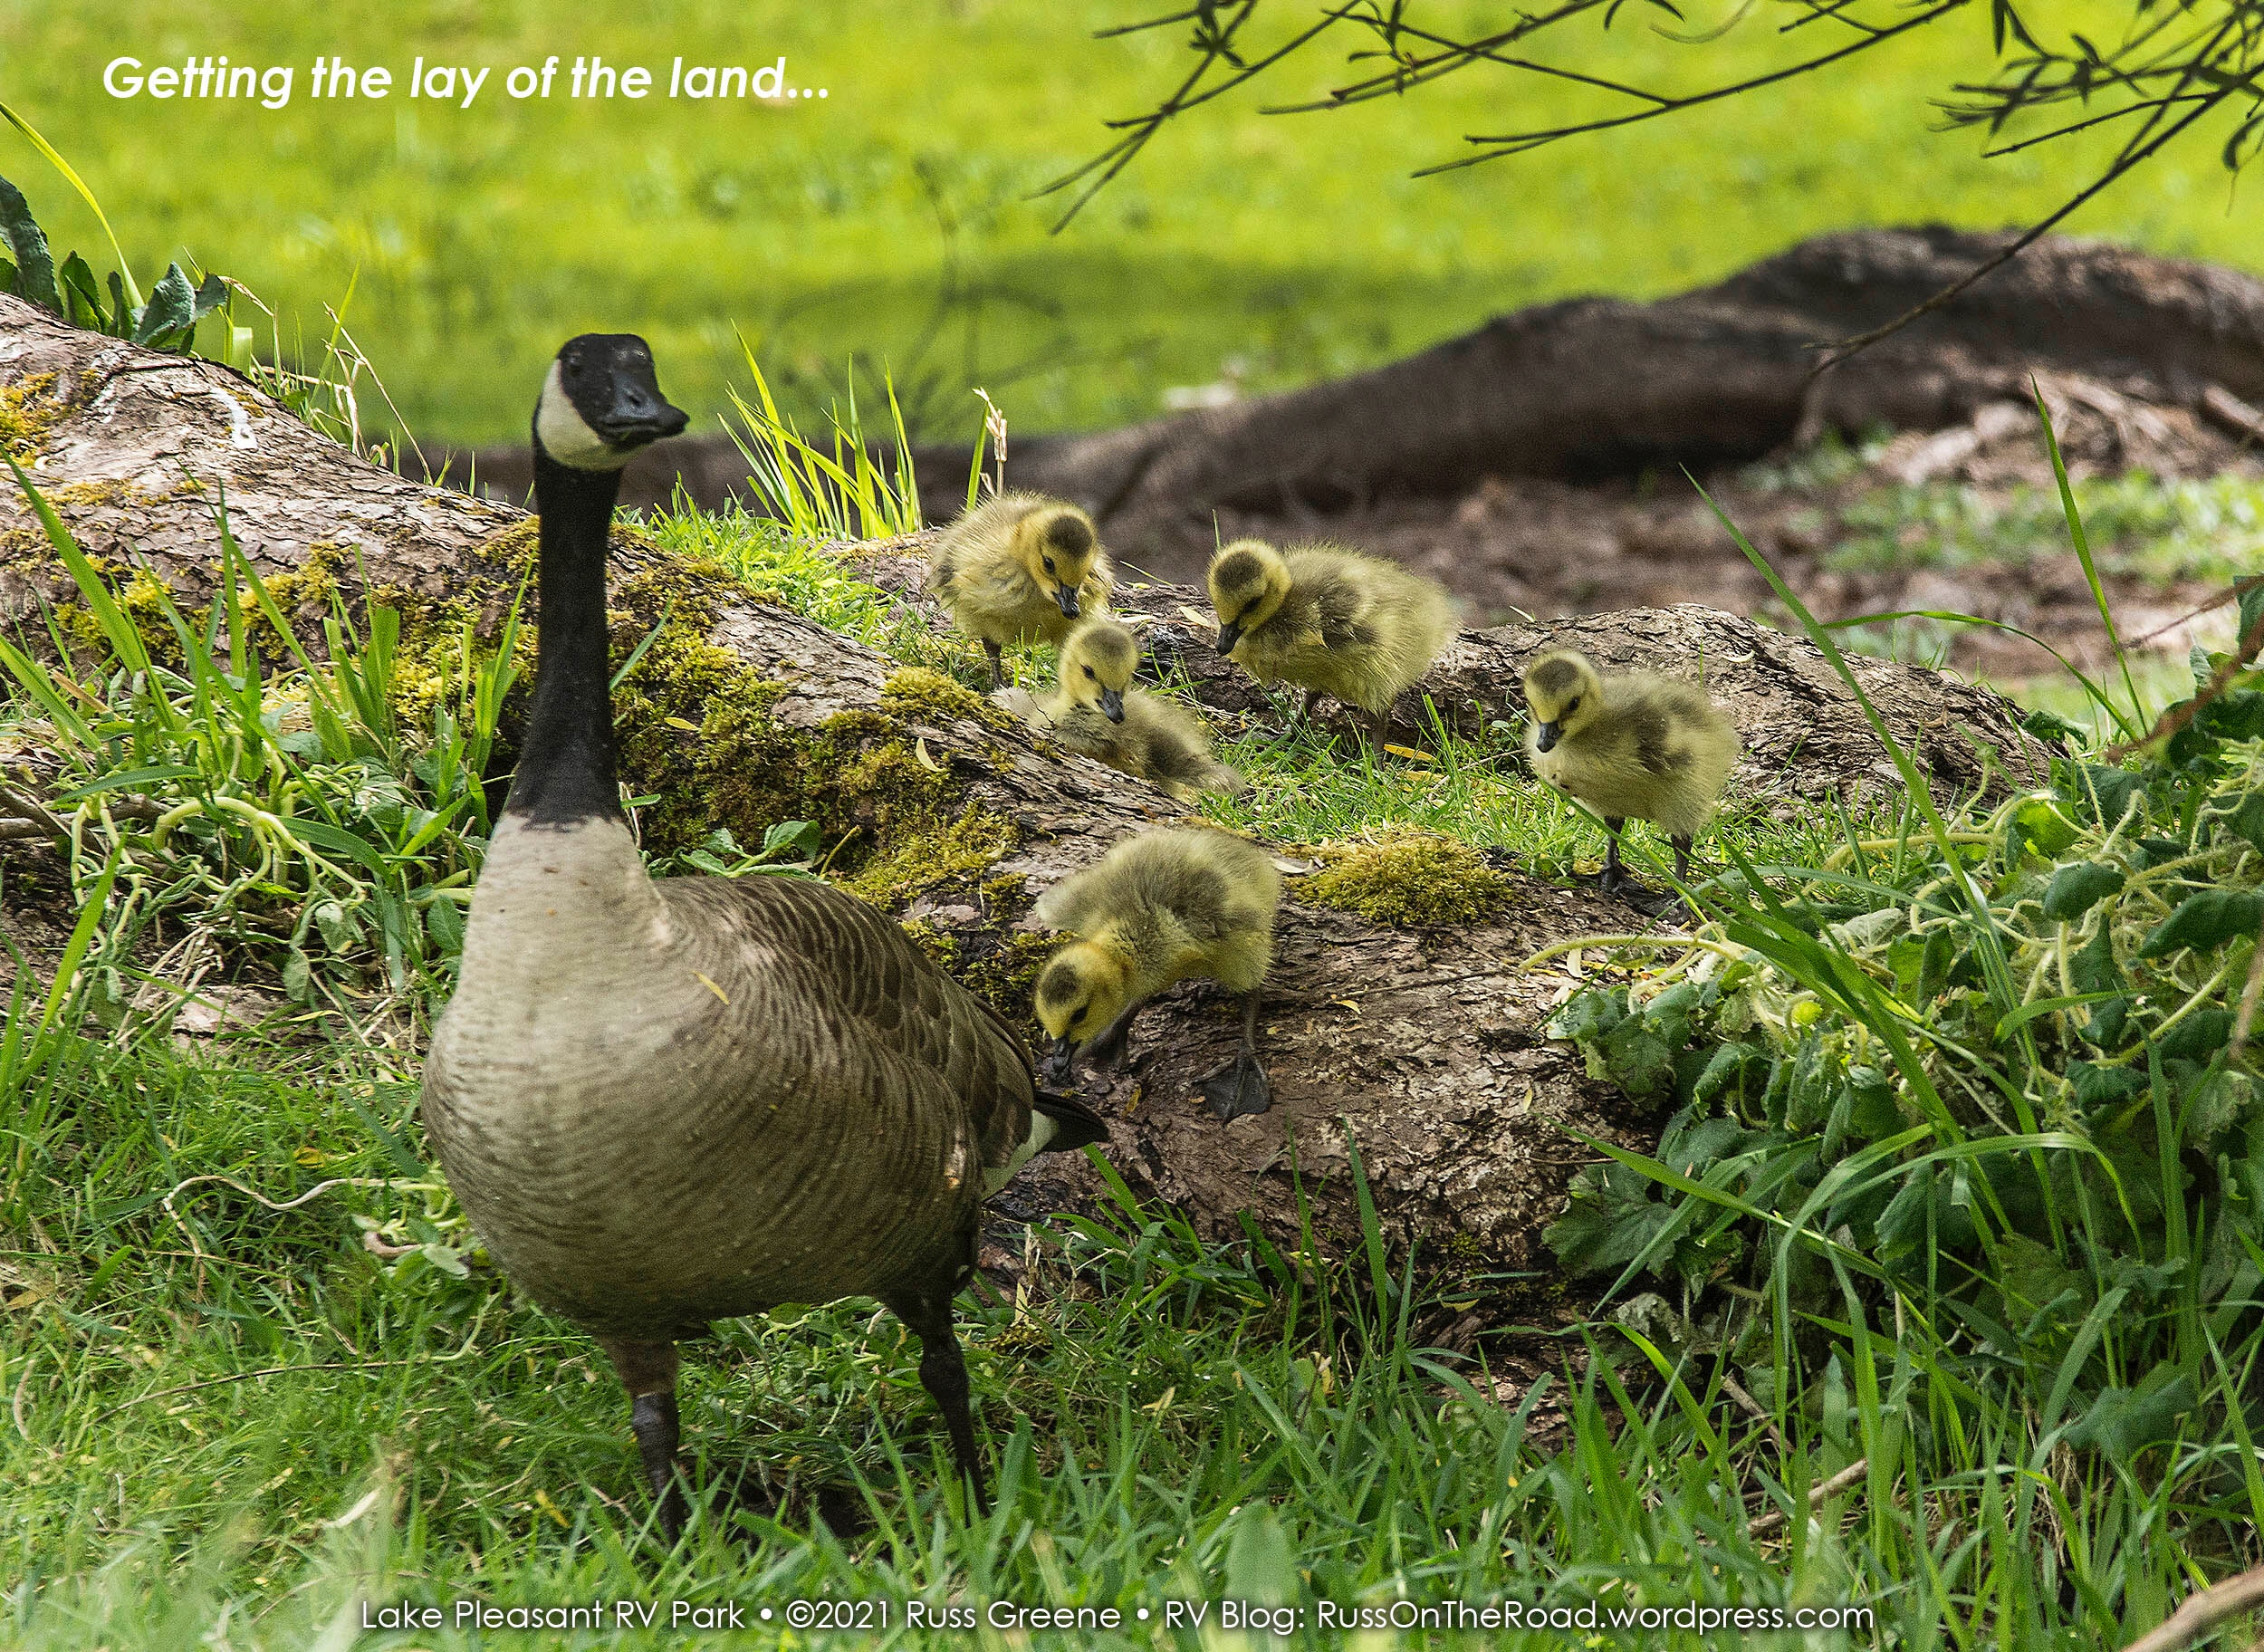 Goslings learning their way around